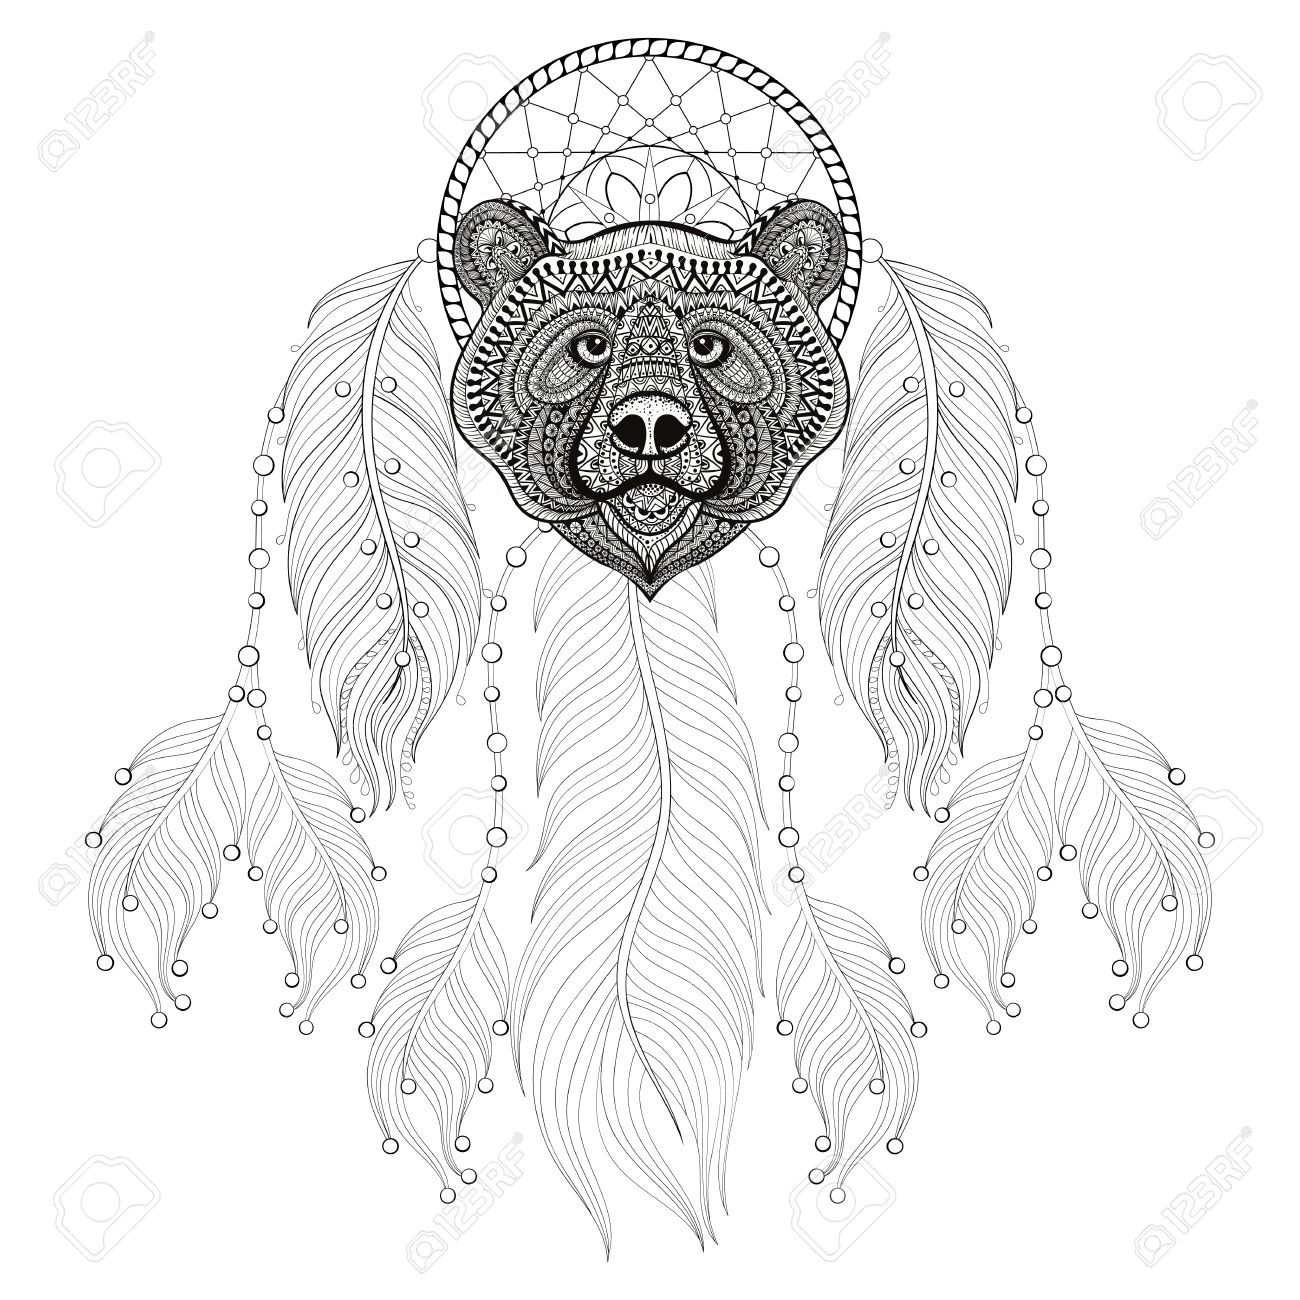 This is an image of Sweet Printable Adult Coloring Pages Dream Catchers